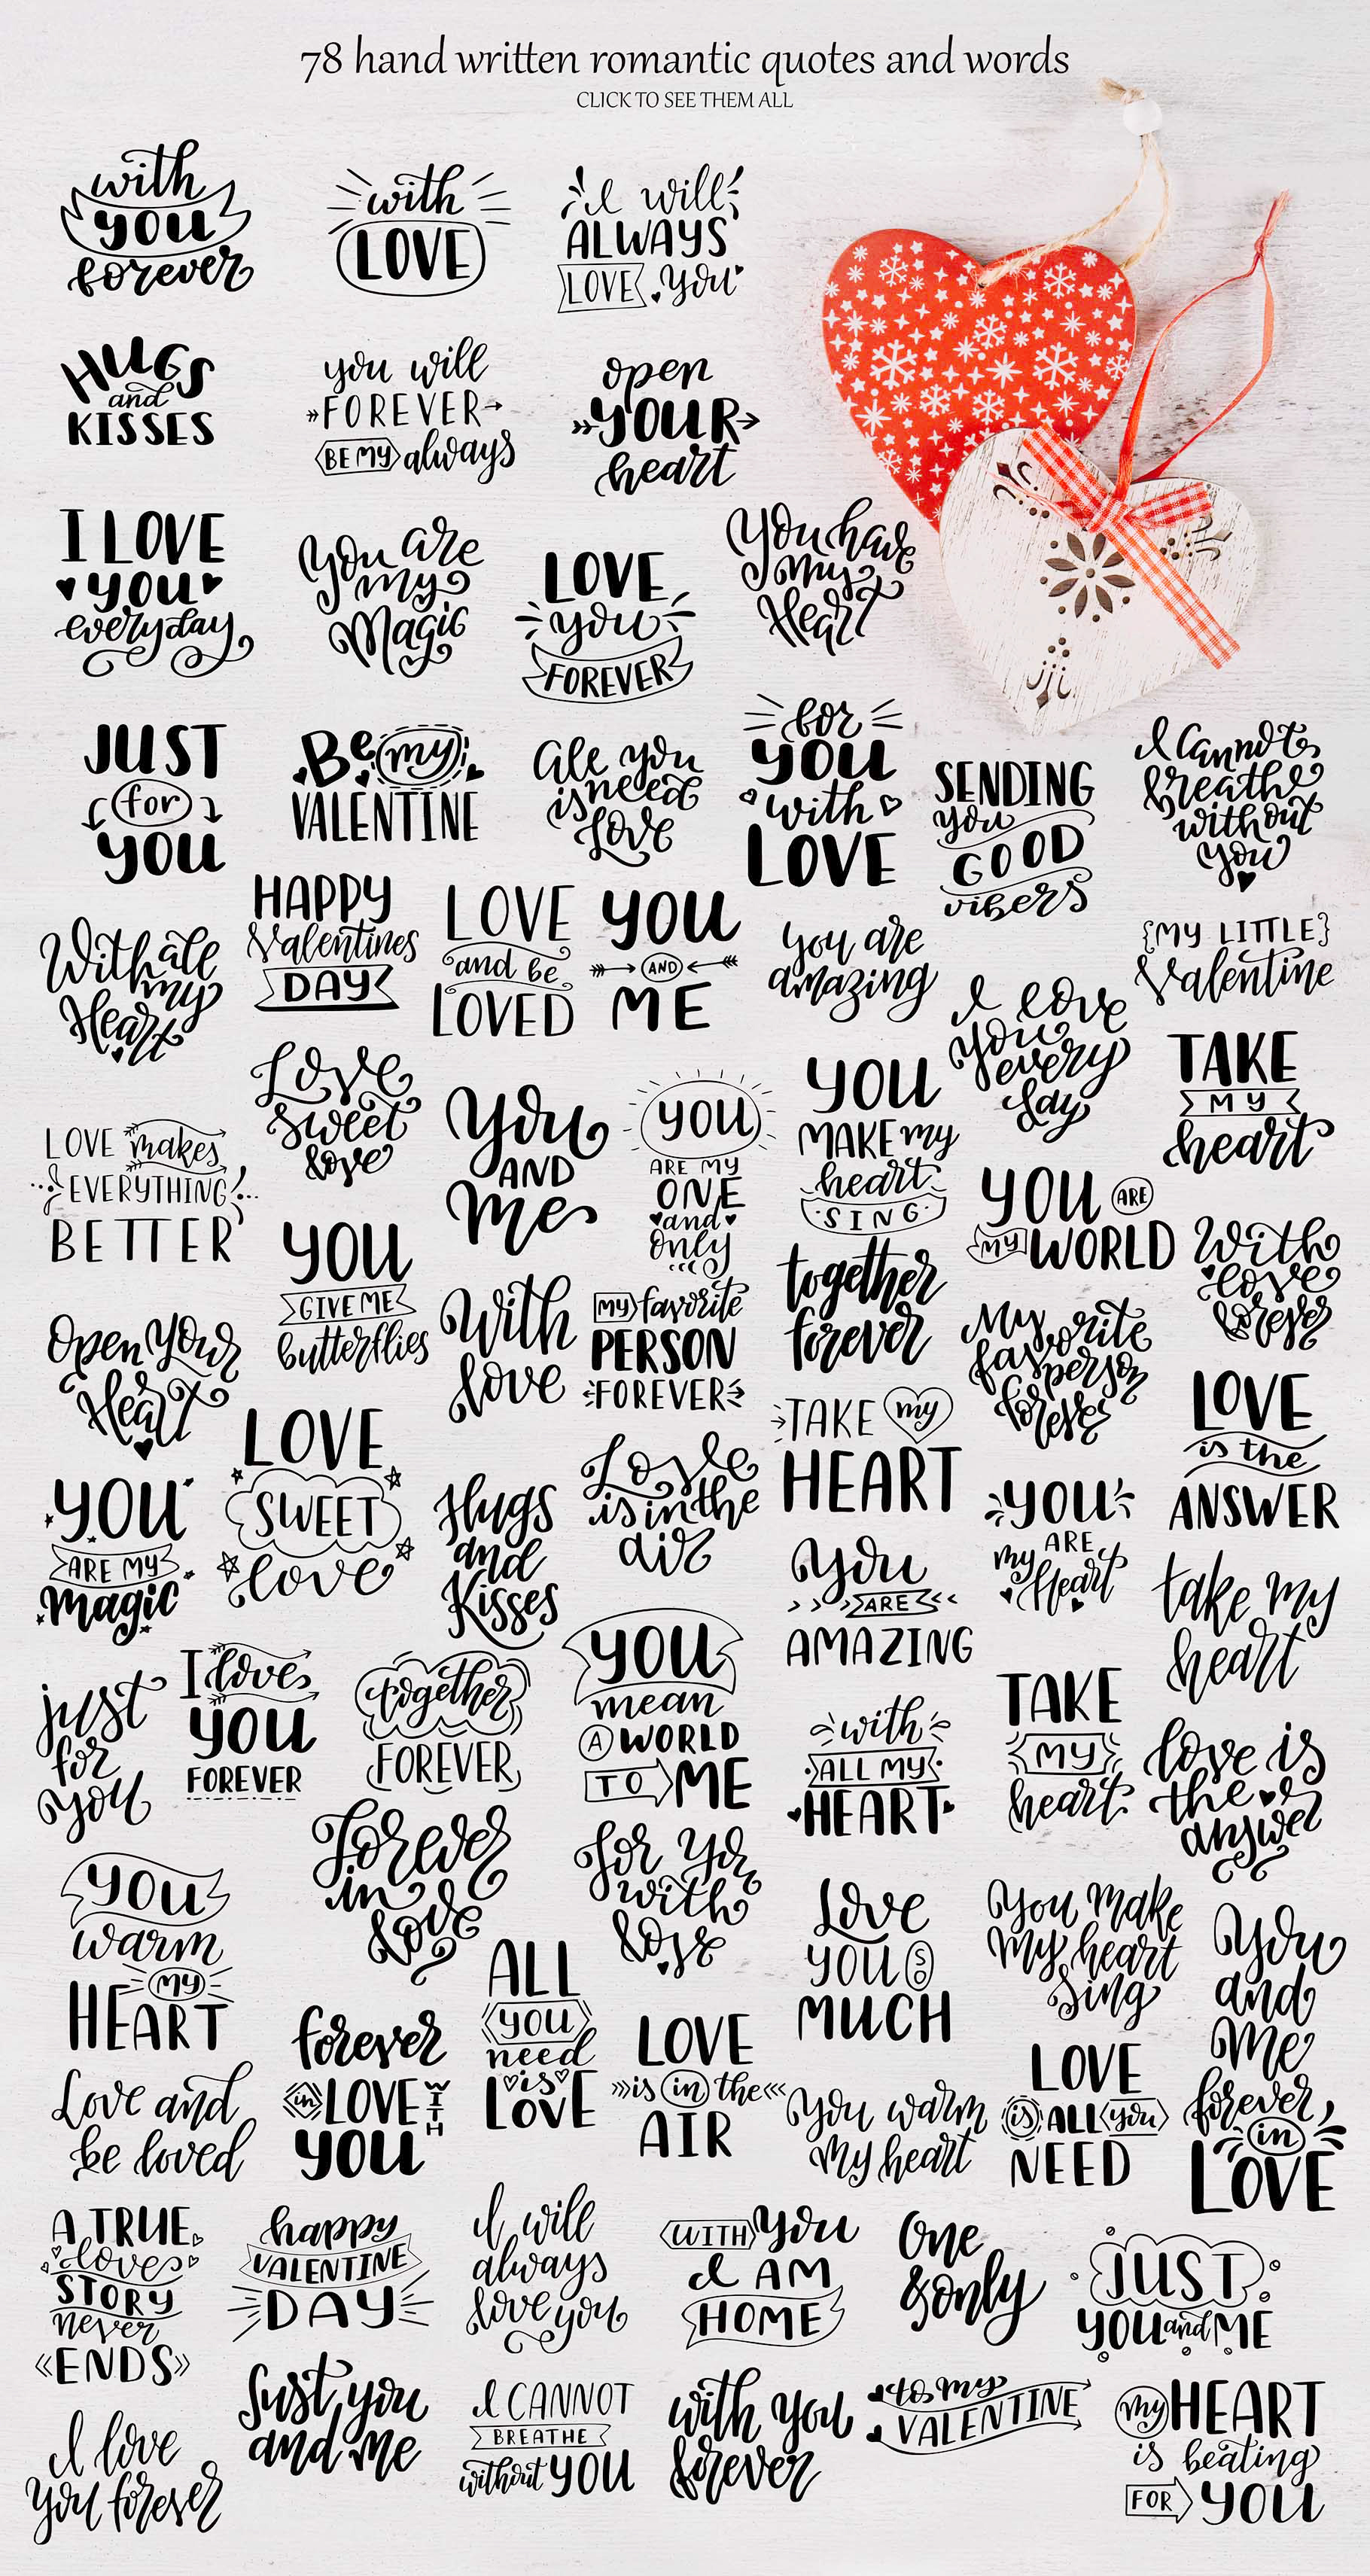 Quotes About Love - Lettering Pack Graphic By tregubova.jul Image 8